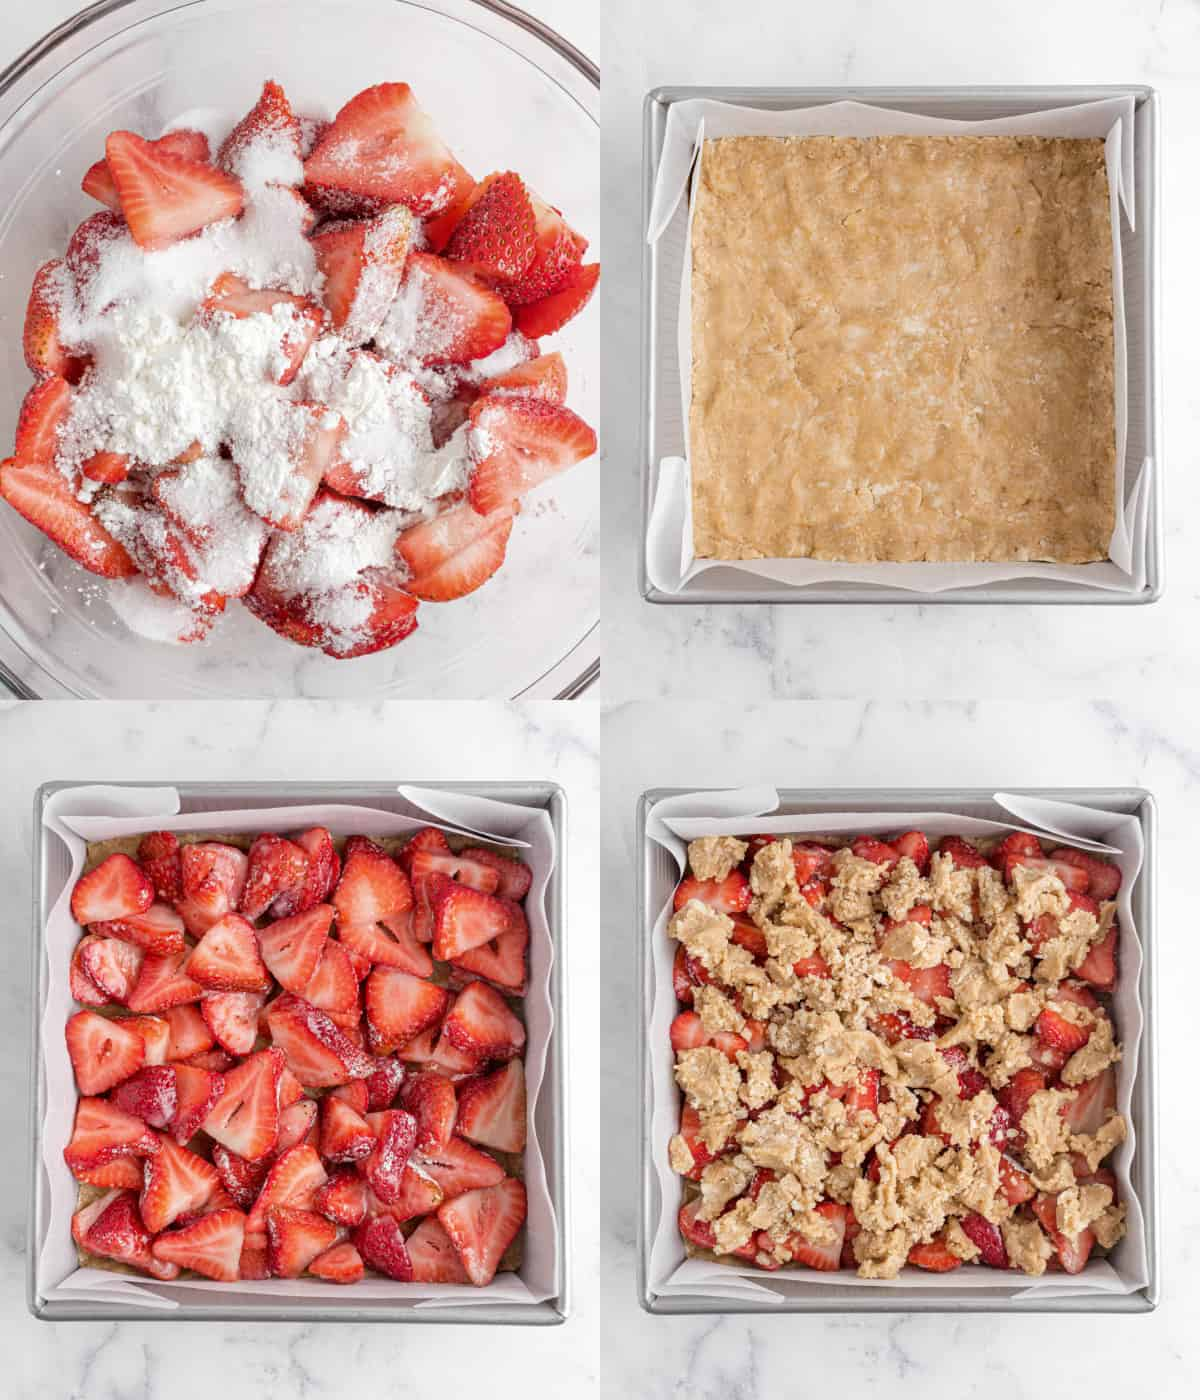 layering ingredients into pan for bars